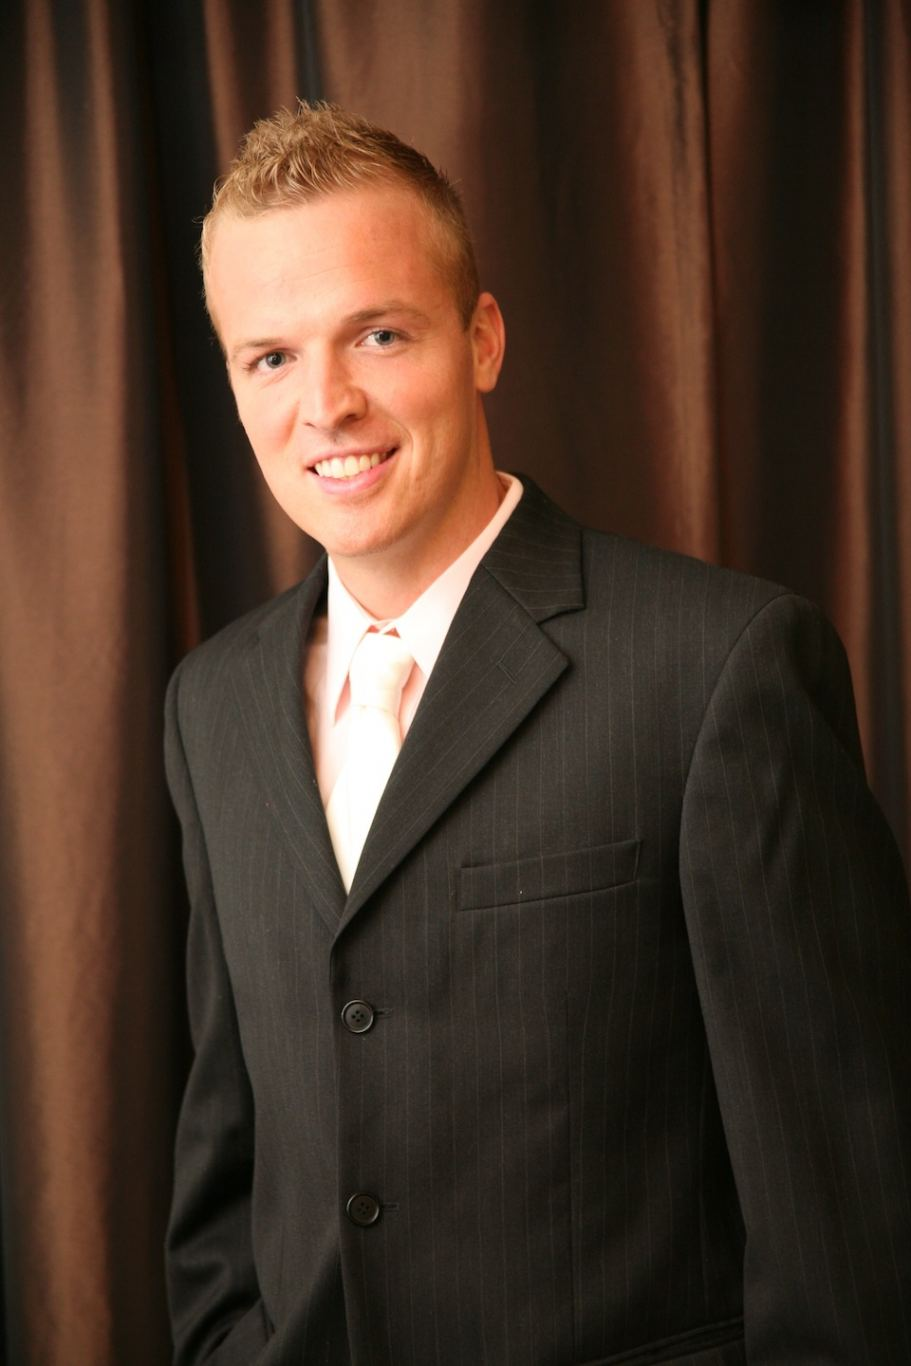 Dustin Jacobs, BrightStar CU Marketing Manager